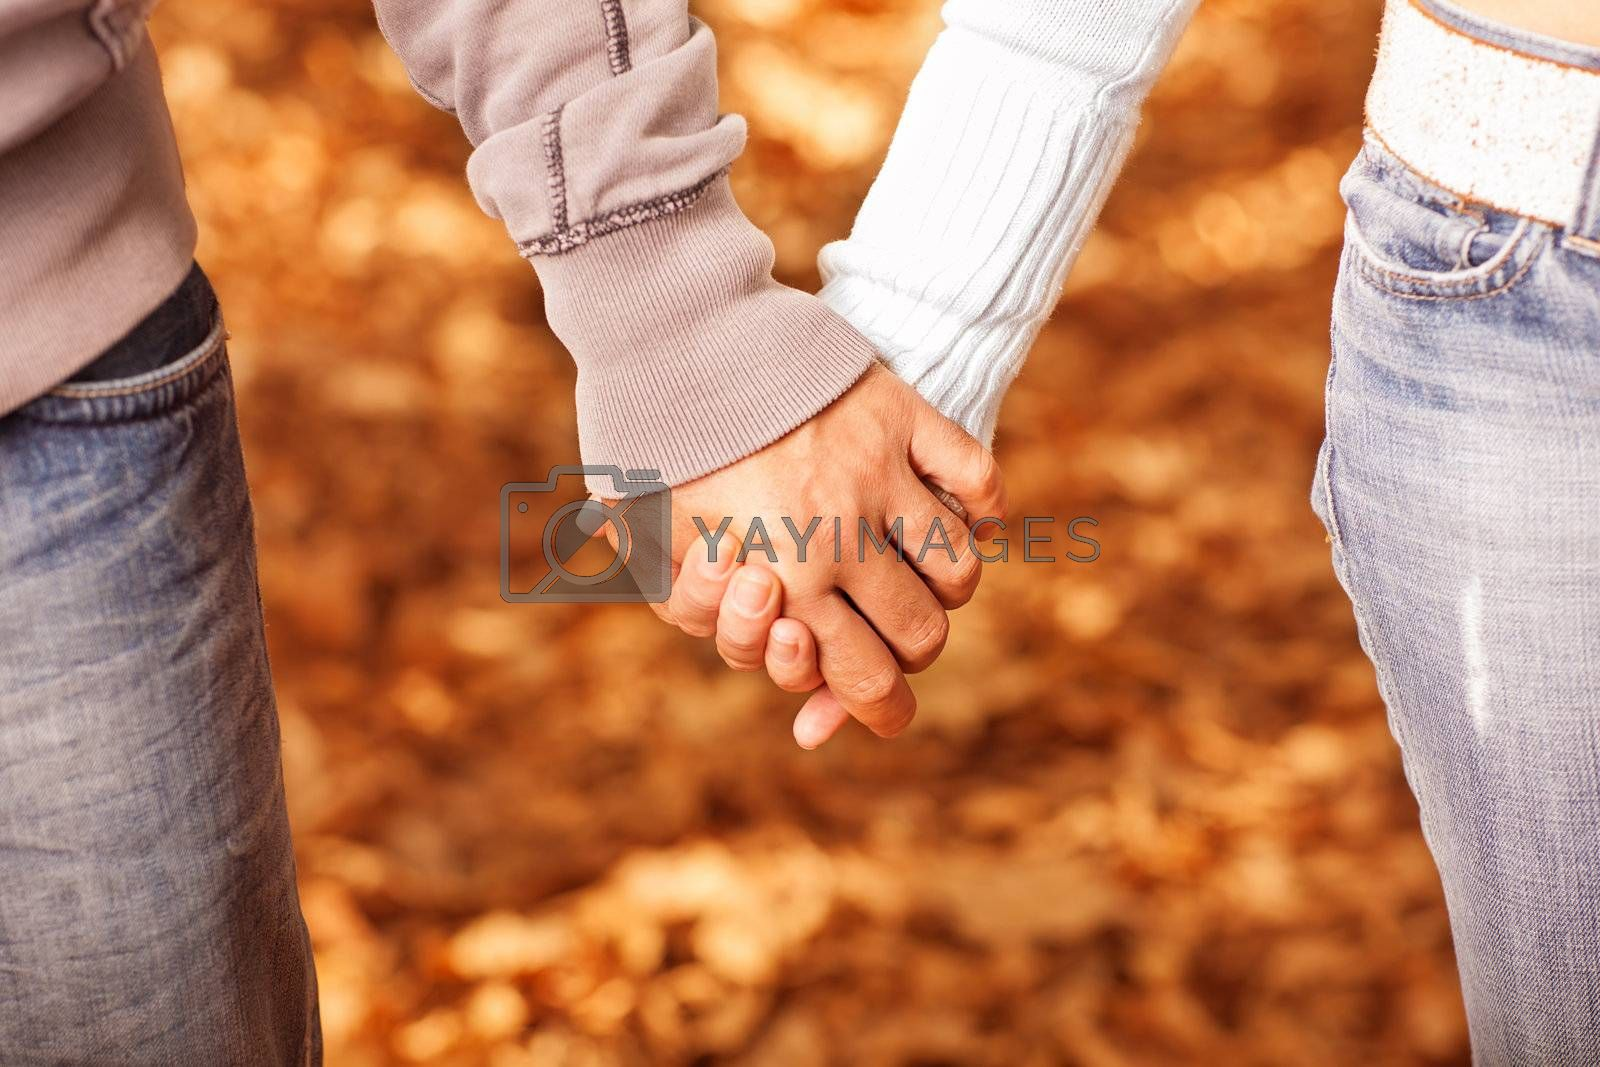 Photo of two loving people holding each other by hands on golden autumnal background, romantic relationship, best friends, happy couple, orange fall foliage under feet, happiness and love concept